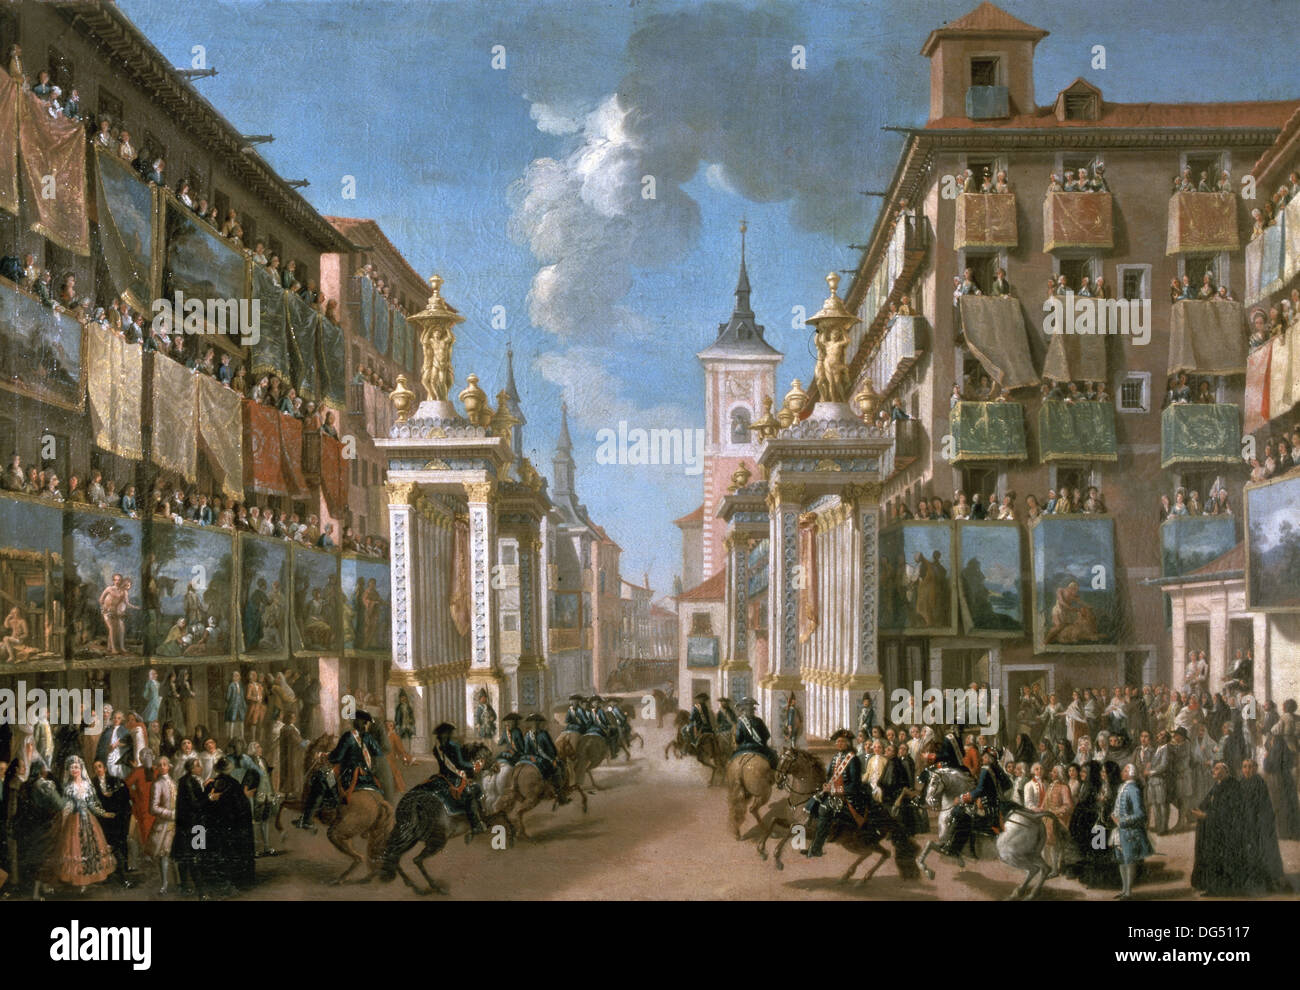 Lorenzo Quiros (1717-1789). The king Charles III entry in Madrid. Spain.1760 through Mayor street. - Stock Image